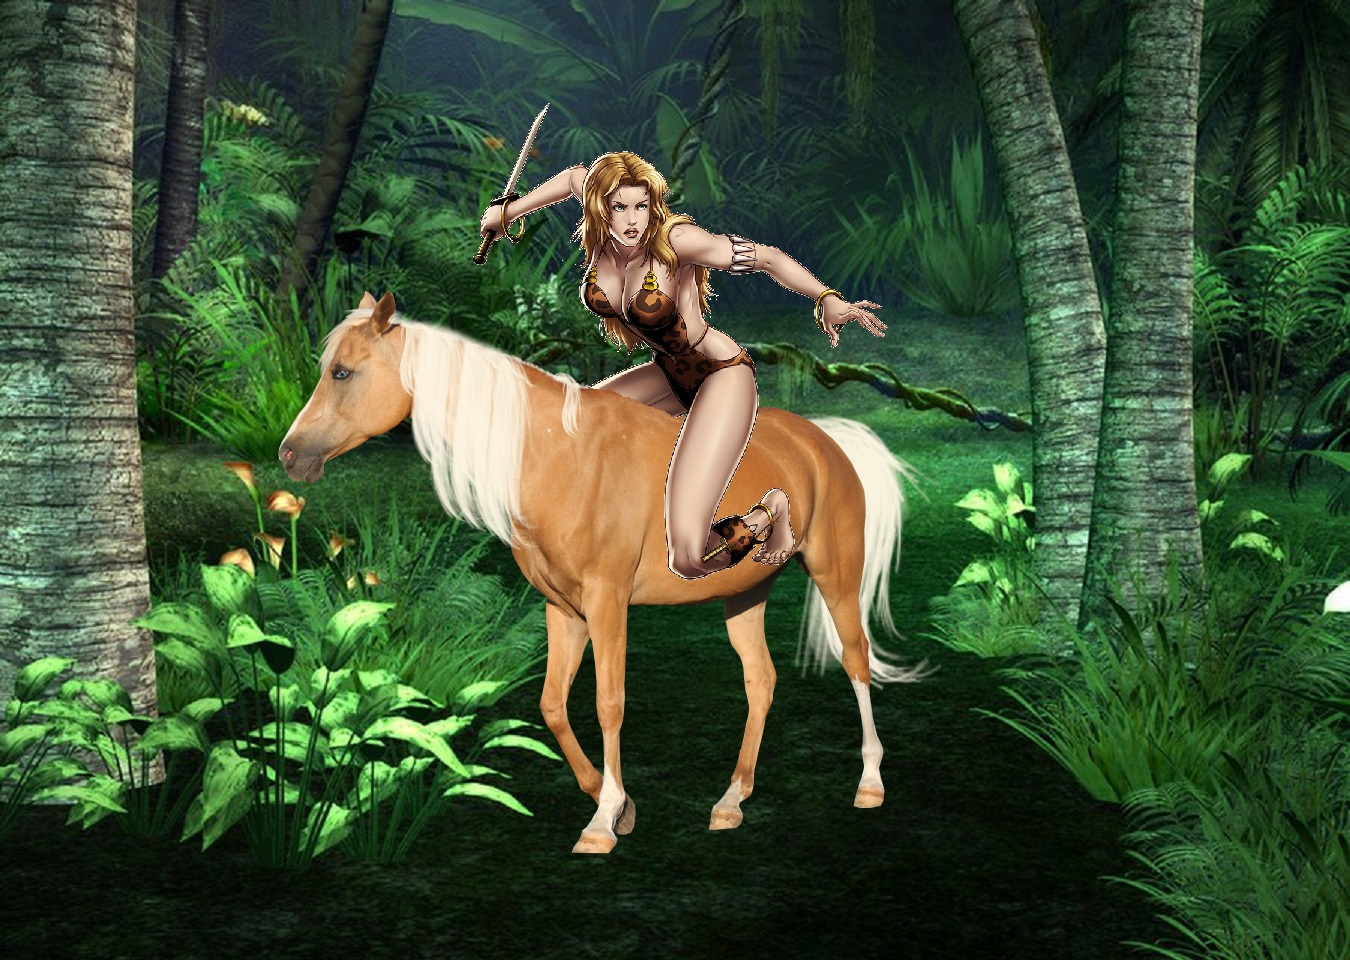 jungle girls images jungle girl shanna riding her